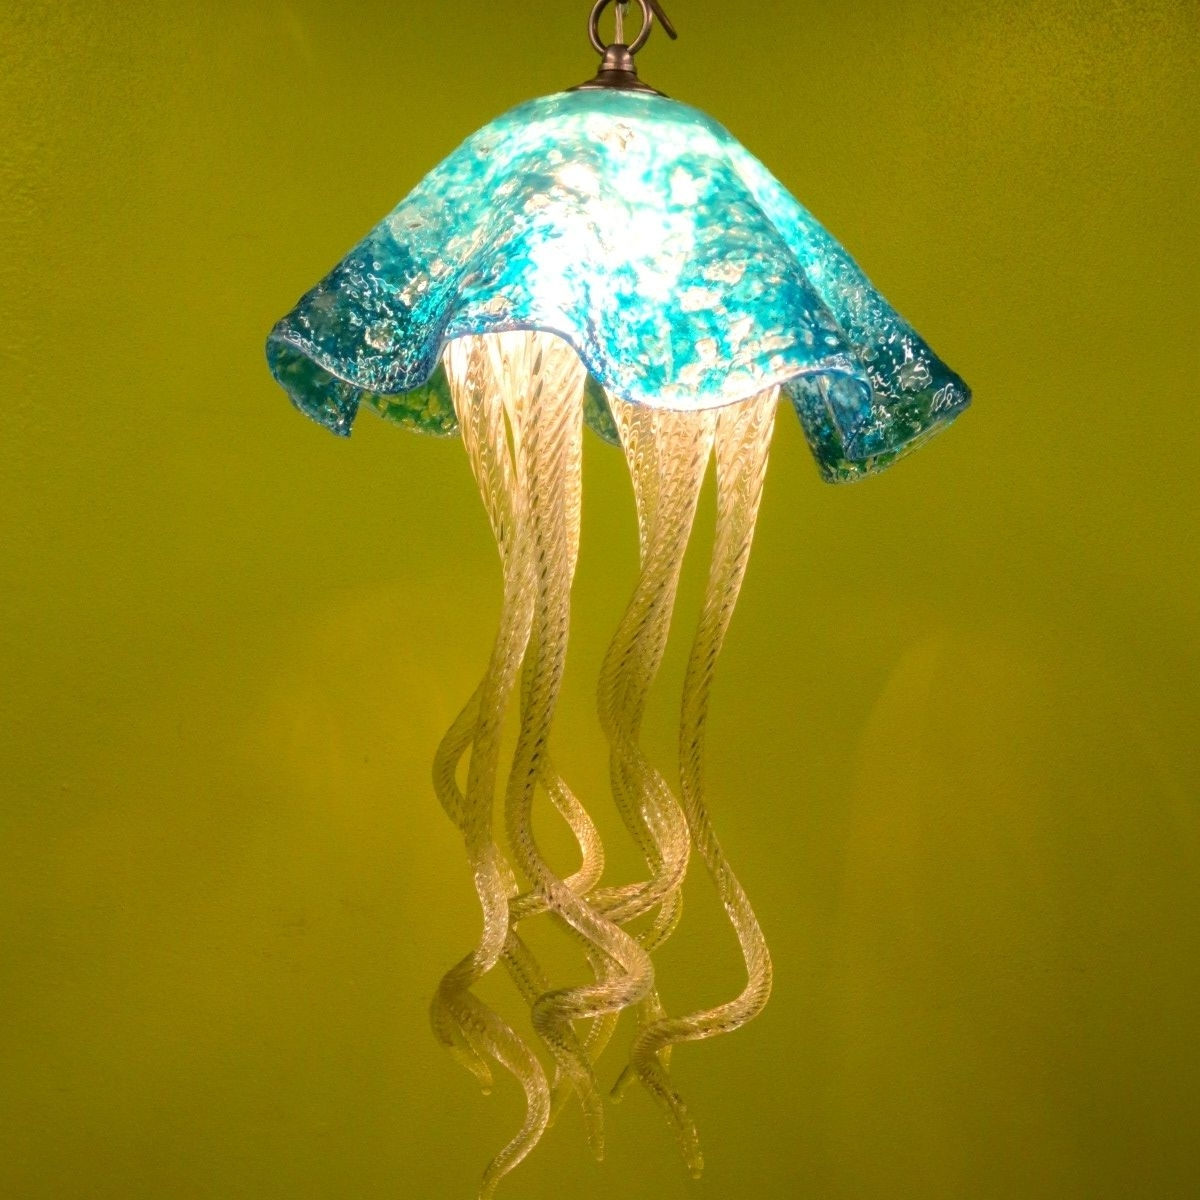 Turquoise Pendant Chandeliers Pertaining To Well Liked Buy A Hand Made Jellyfish Pendant Light – Turquoise Jellyfish (View 14 of 20)